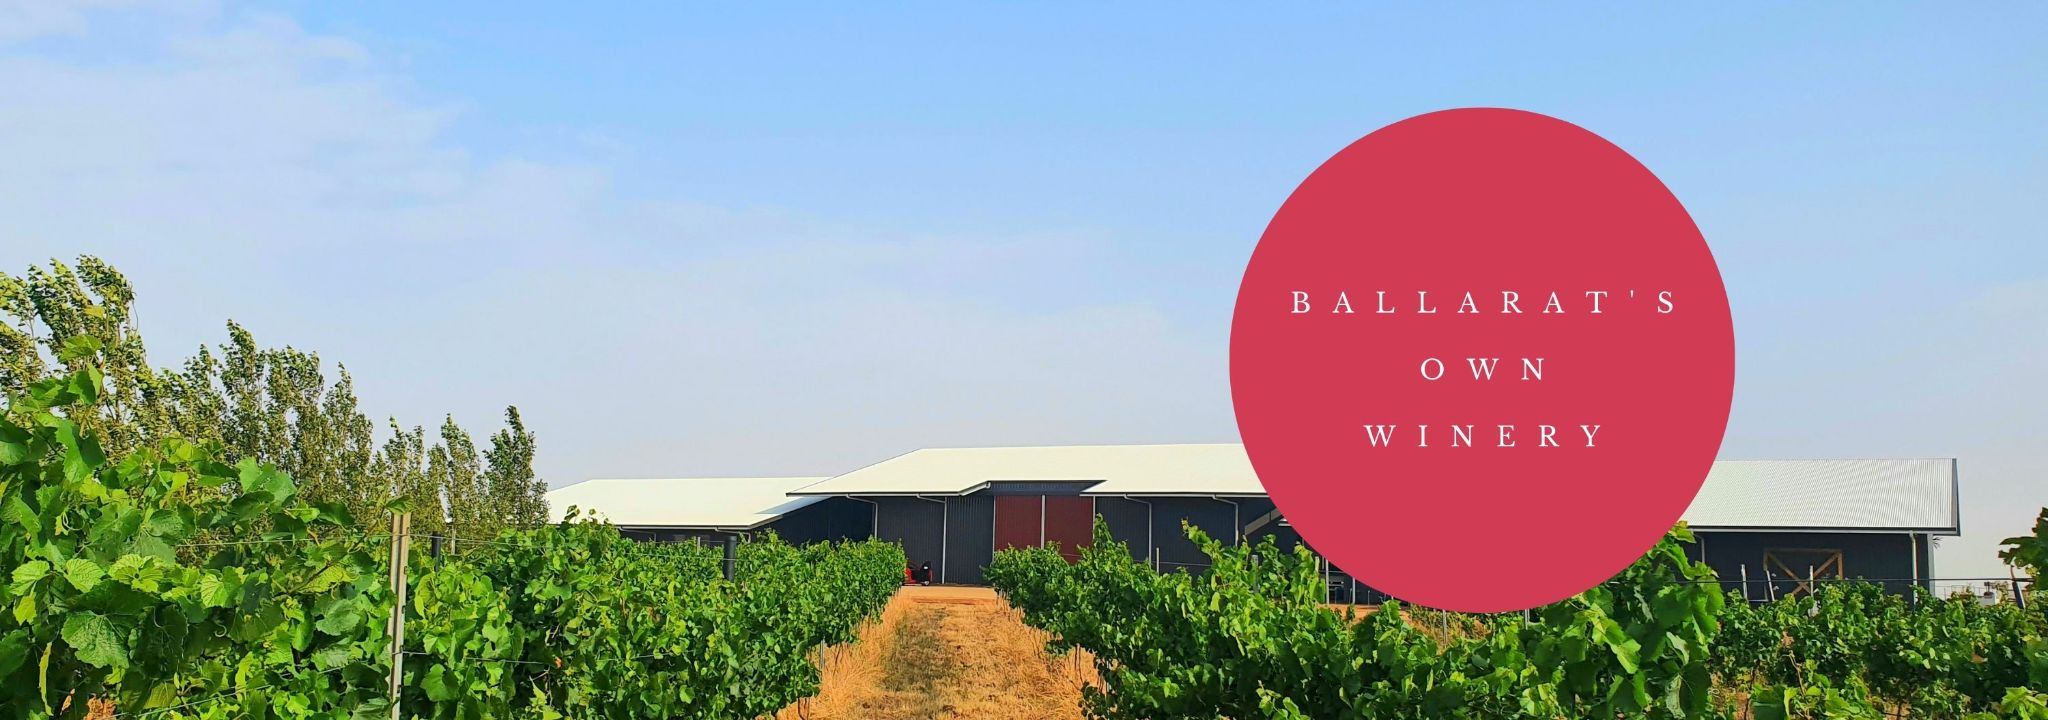 Ballarat's own winery